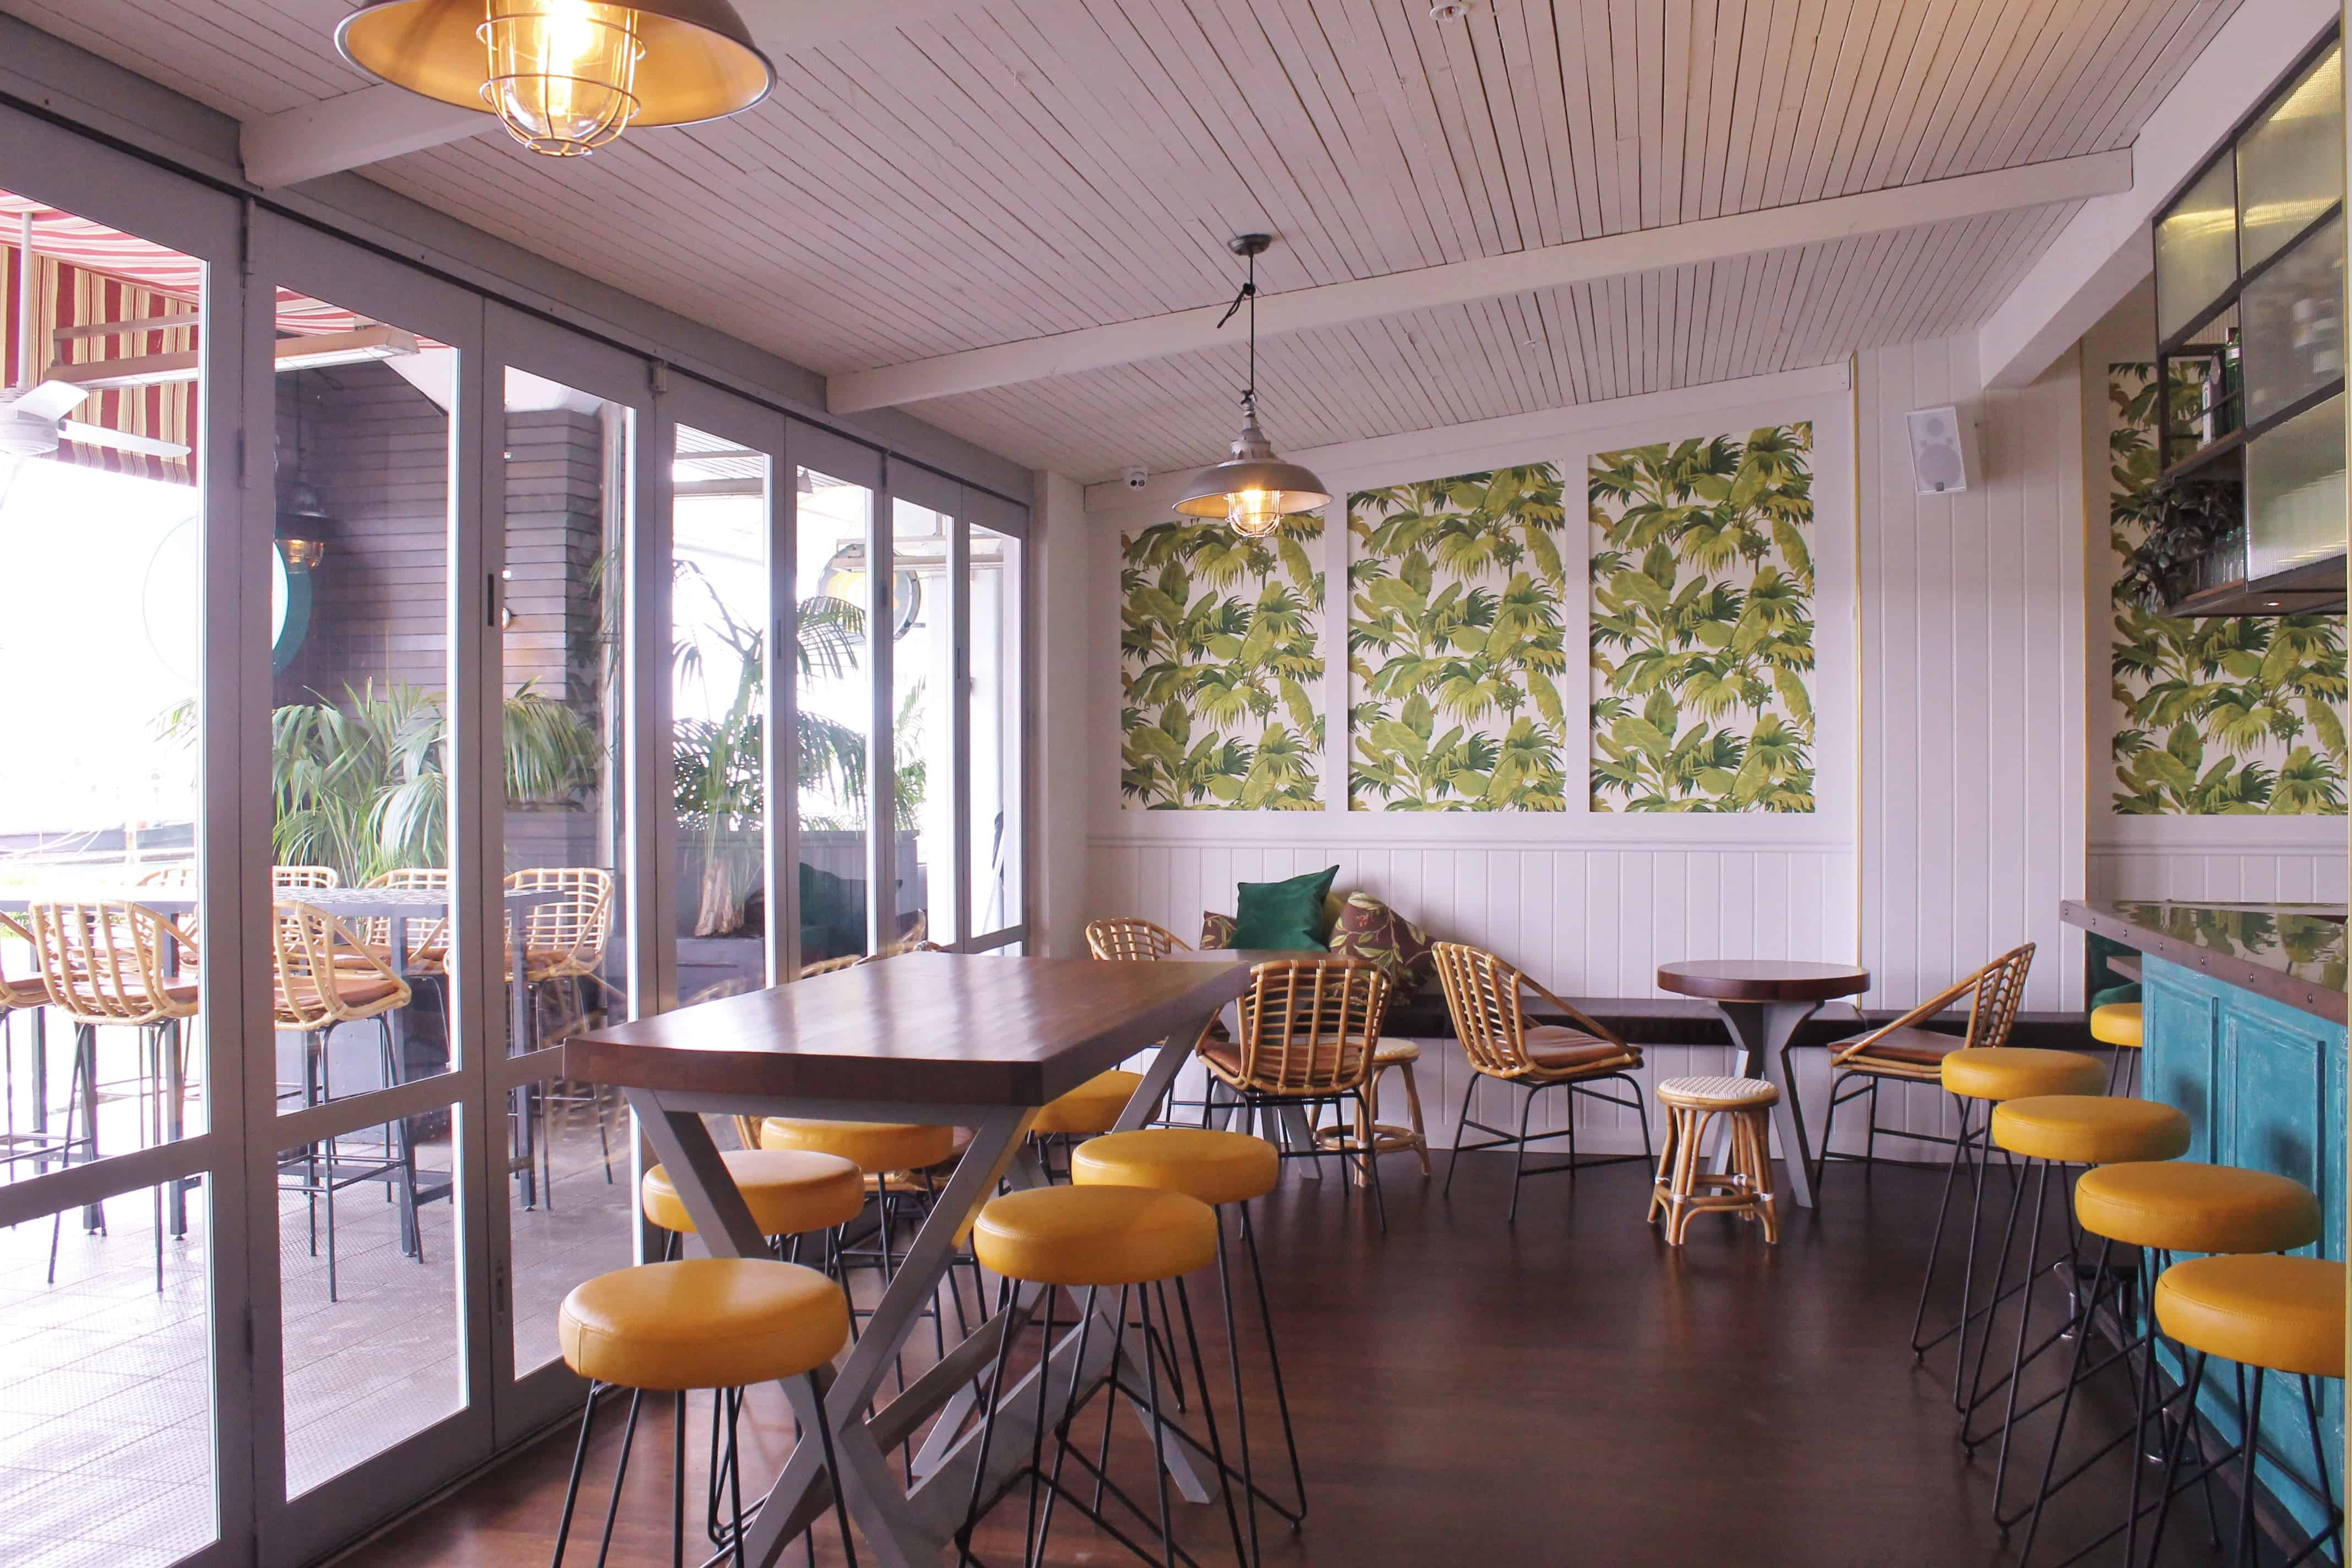 Culpepper restaurant in Auckland table and chair design with featured yellow chairs